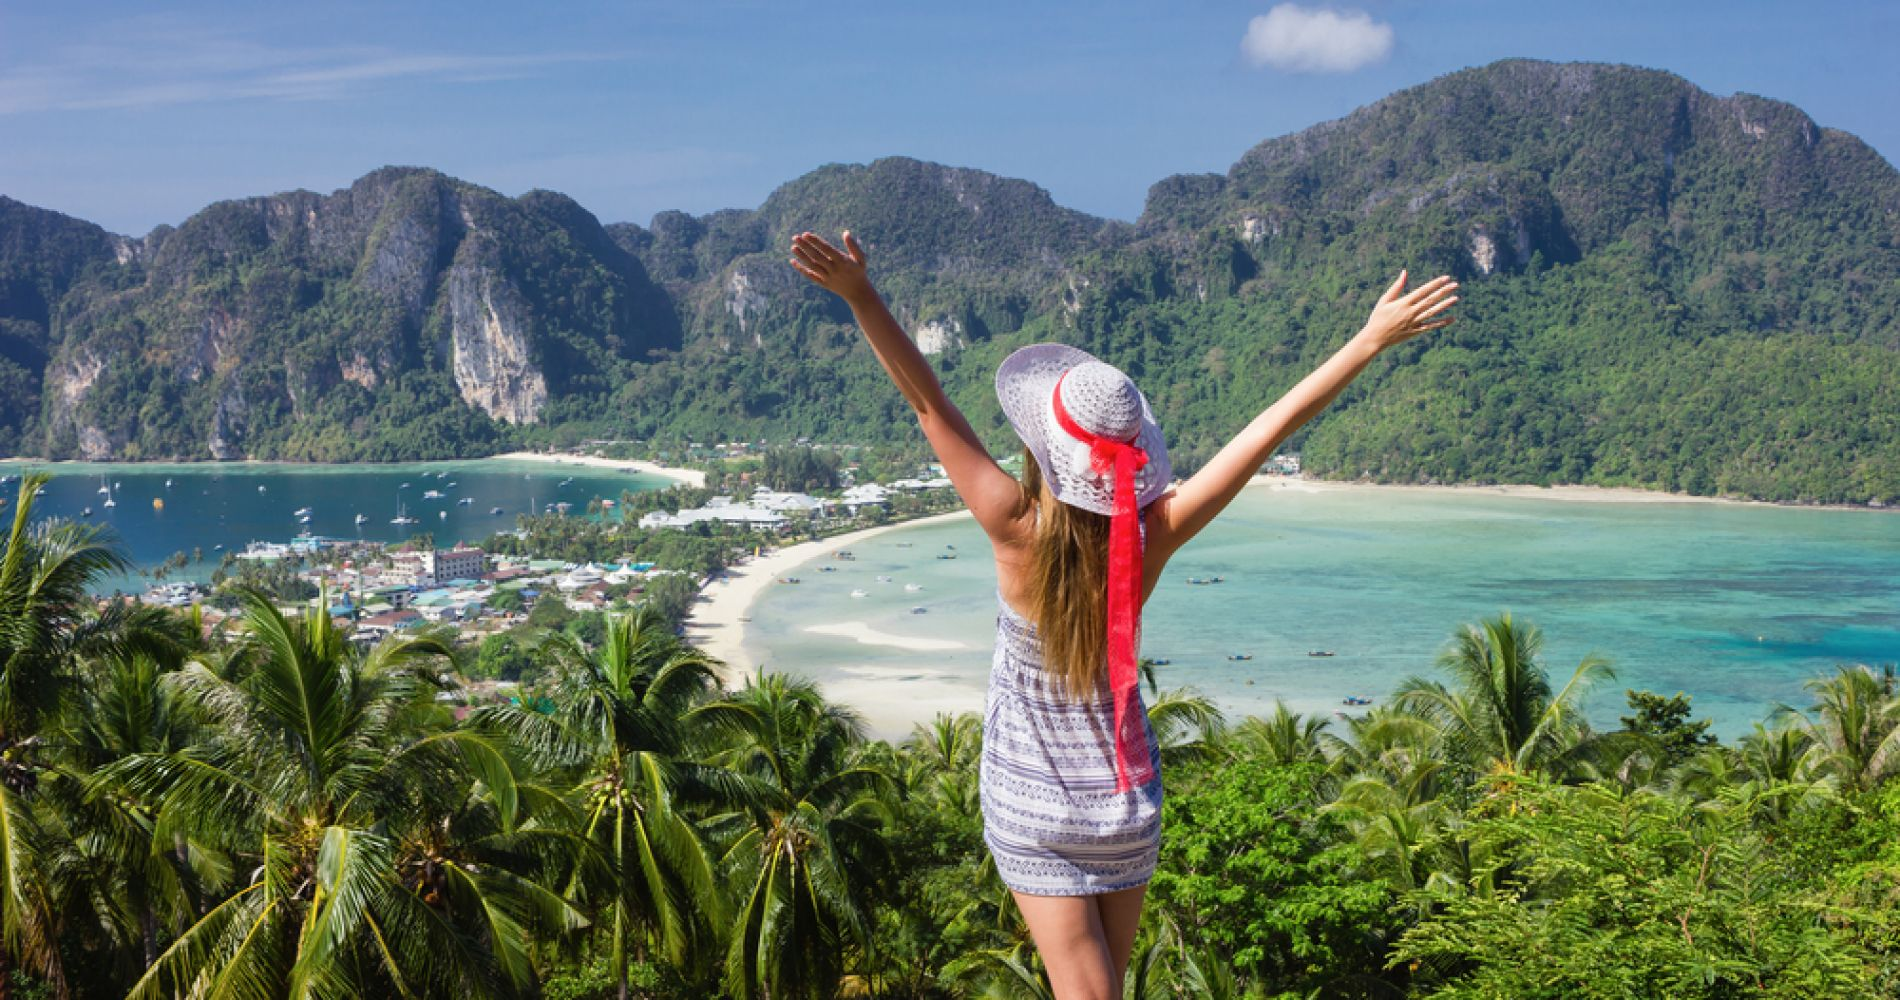 Visit Phi Phi viewpoint to admire the magnificent island